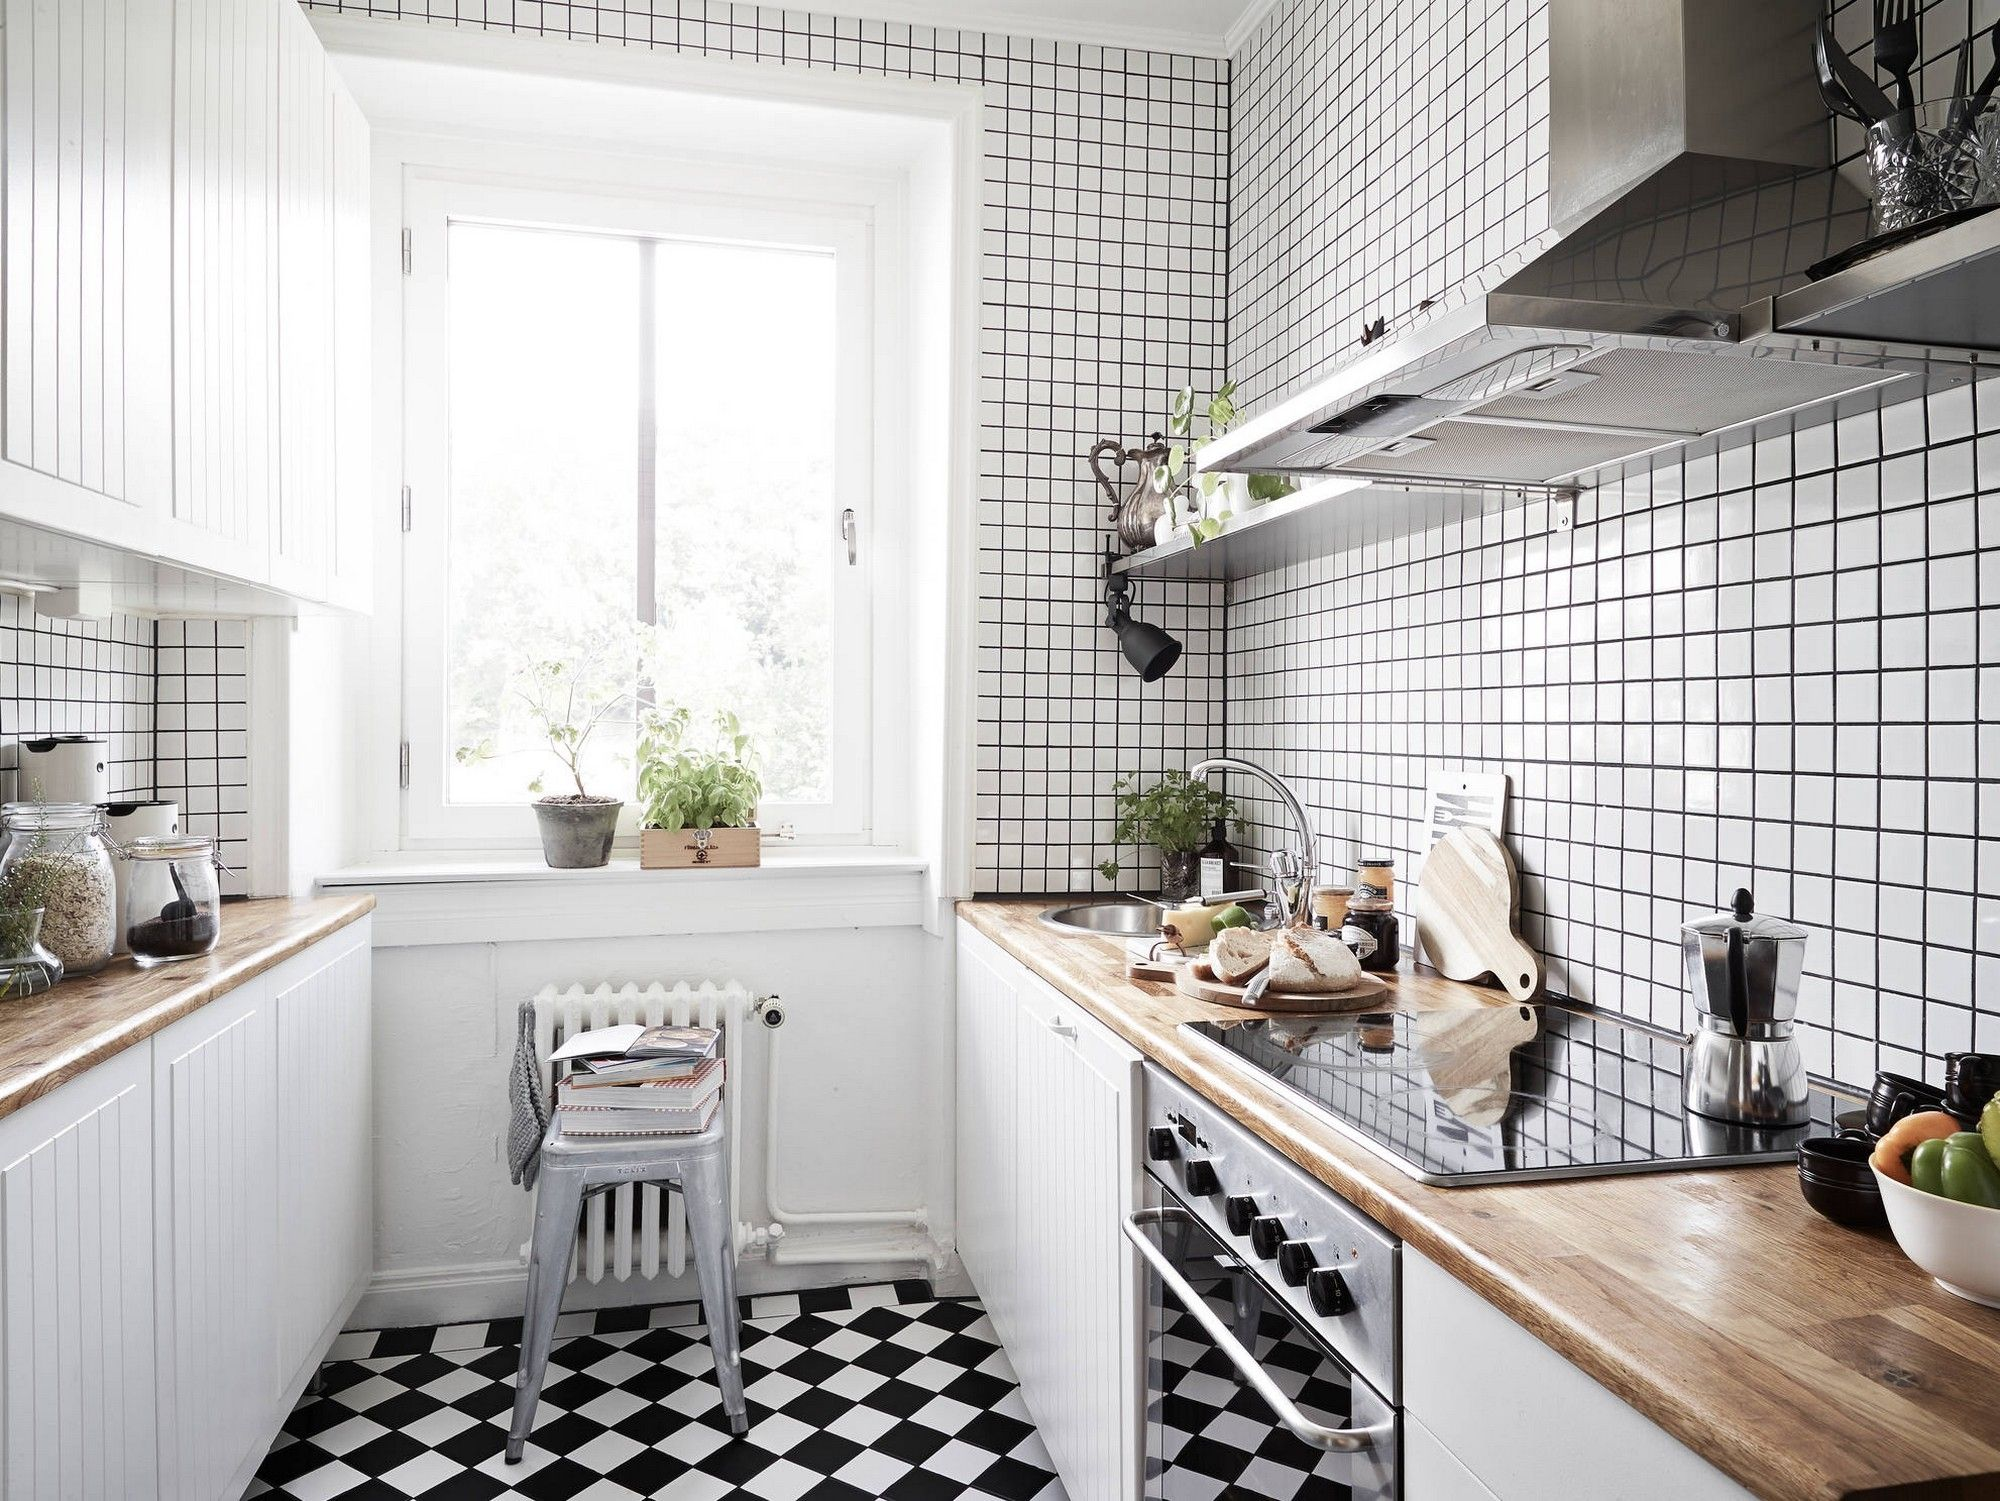 Black And White Tile Kitchen Euro Style Cabinets Classic Floor Tiles 32nd